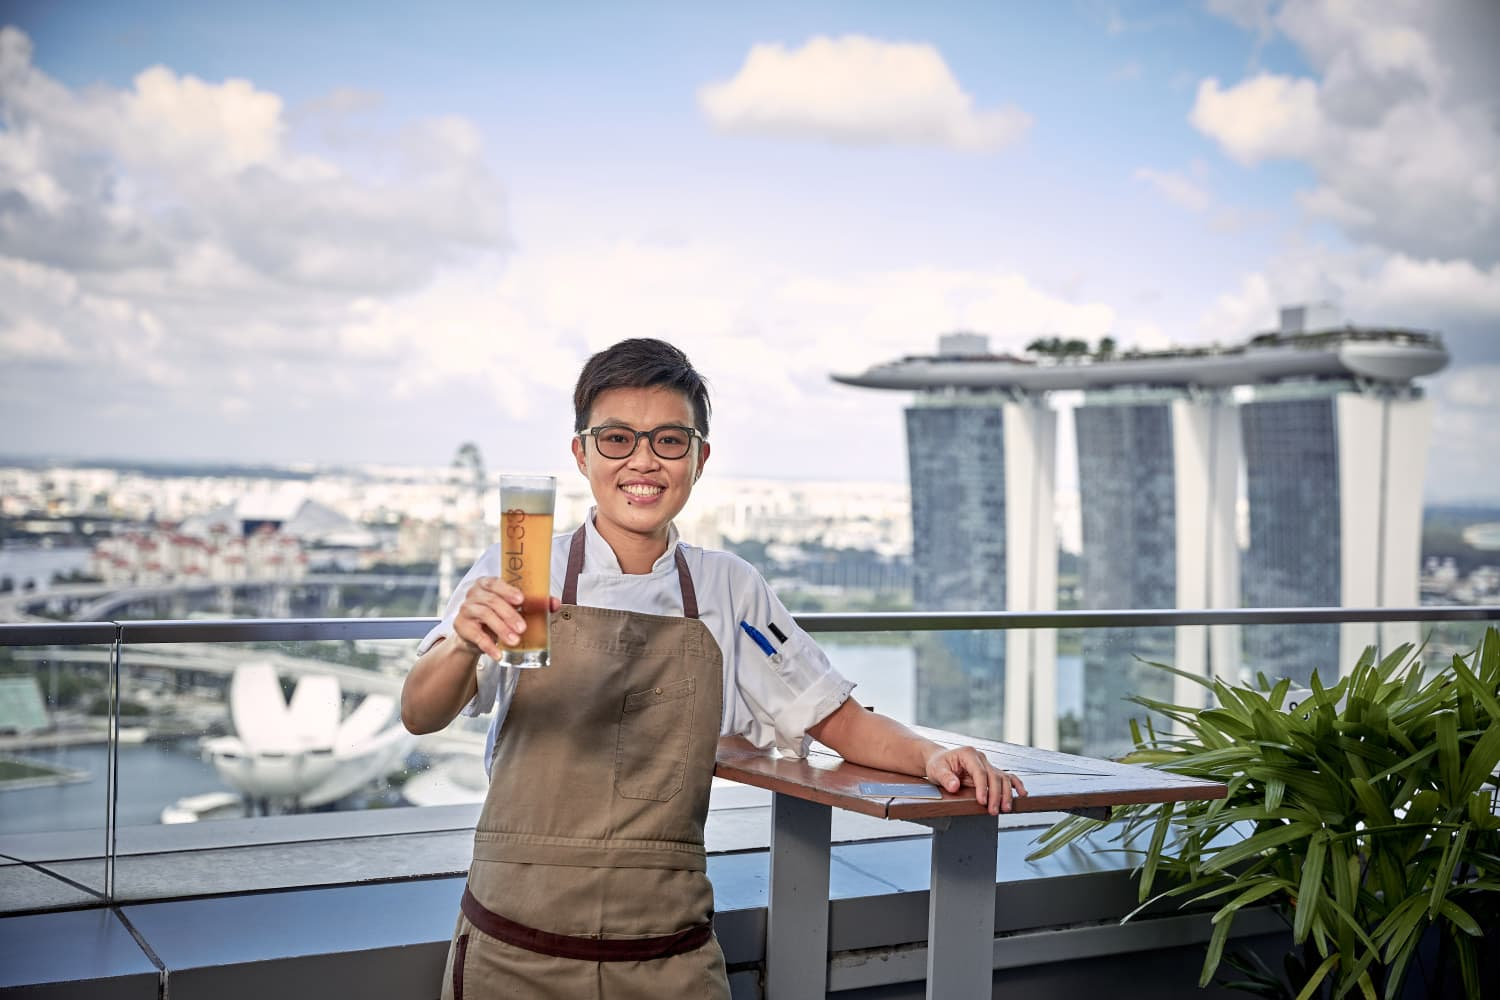 portrait photographer singapore a man holding a beer and posing for the photo